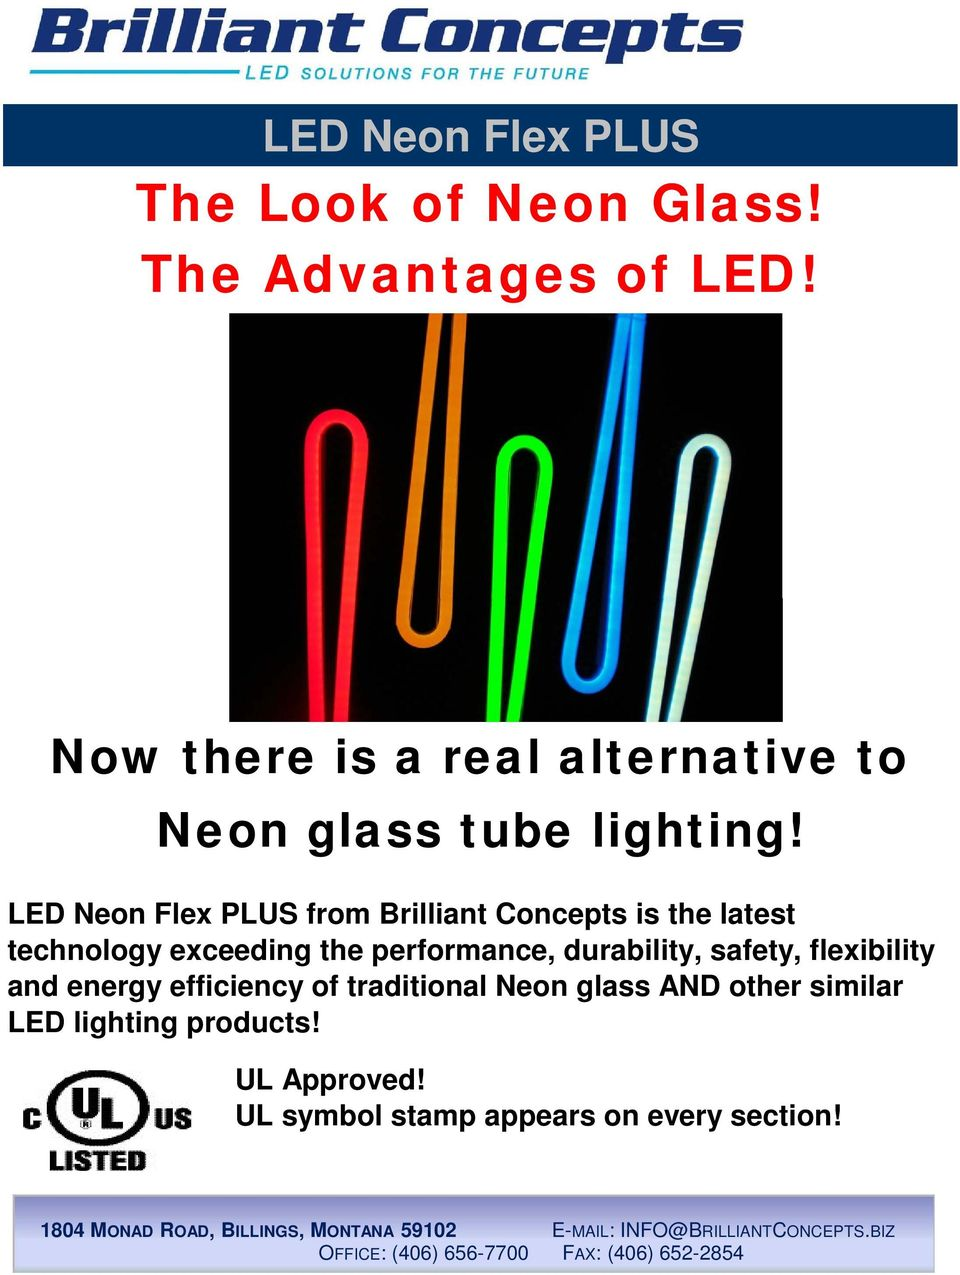 LED Neon Flex PLUS from Brilliant Concepts is the latest technology exceeding the performance,